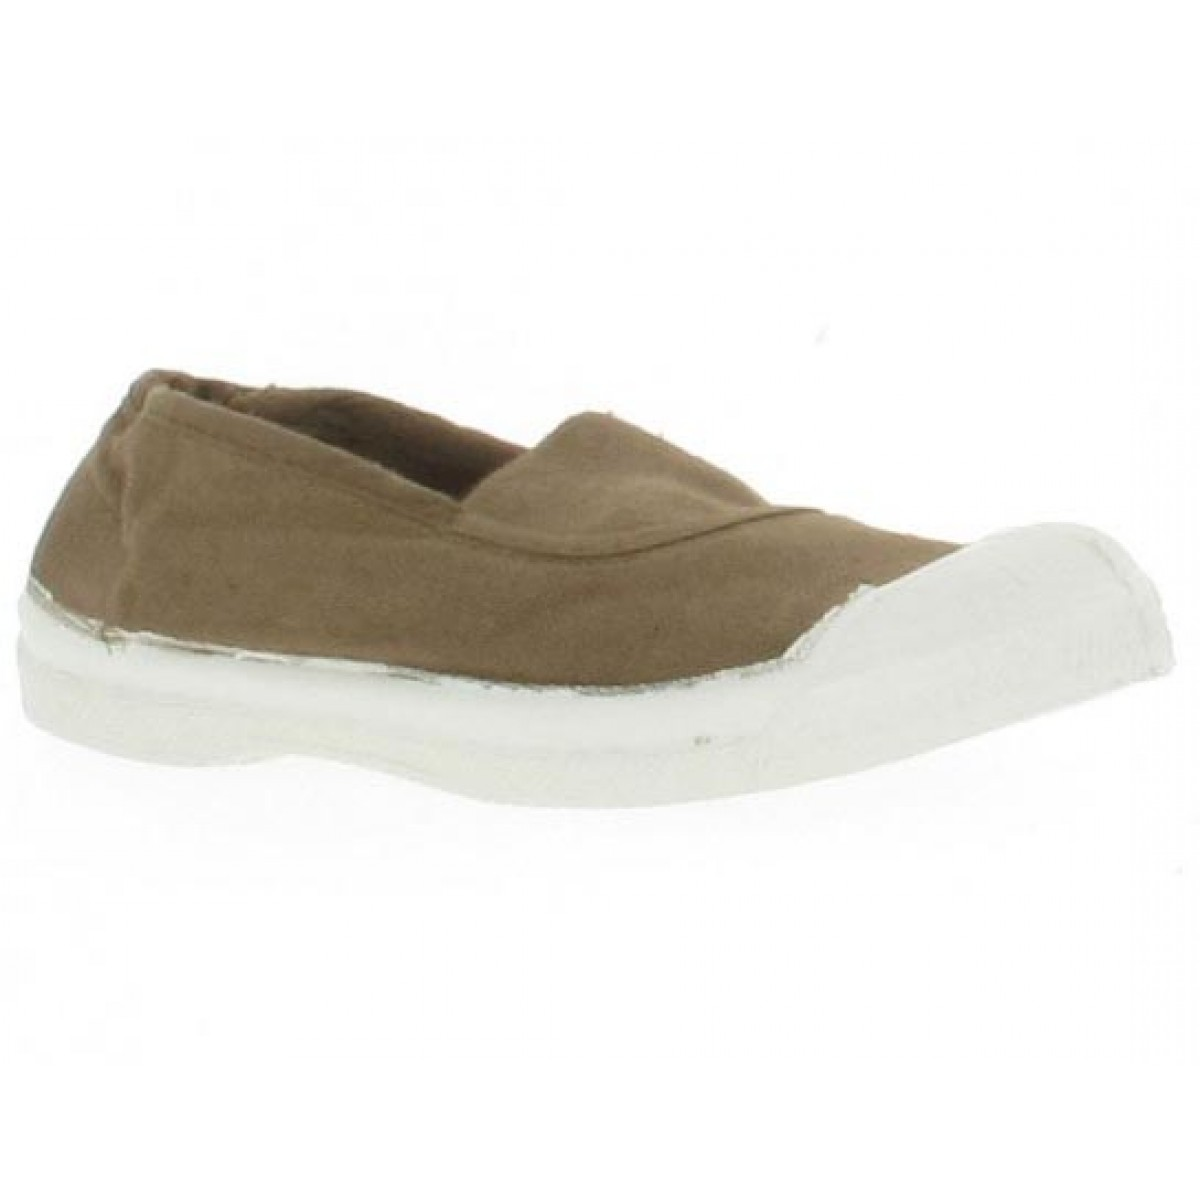 Baskets BENSIMON Elast toile Enfant Naturel